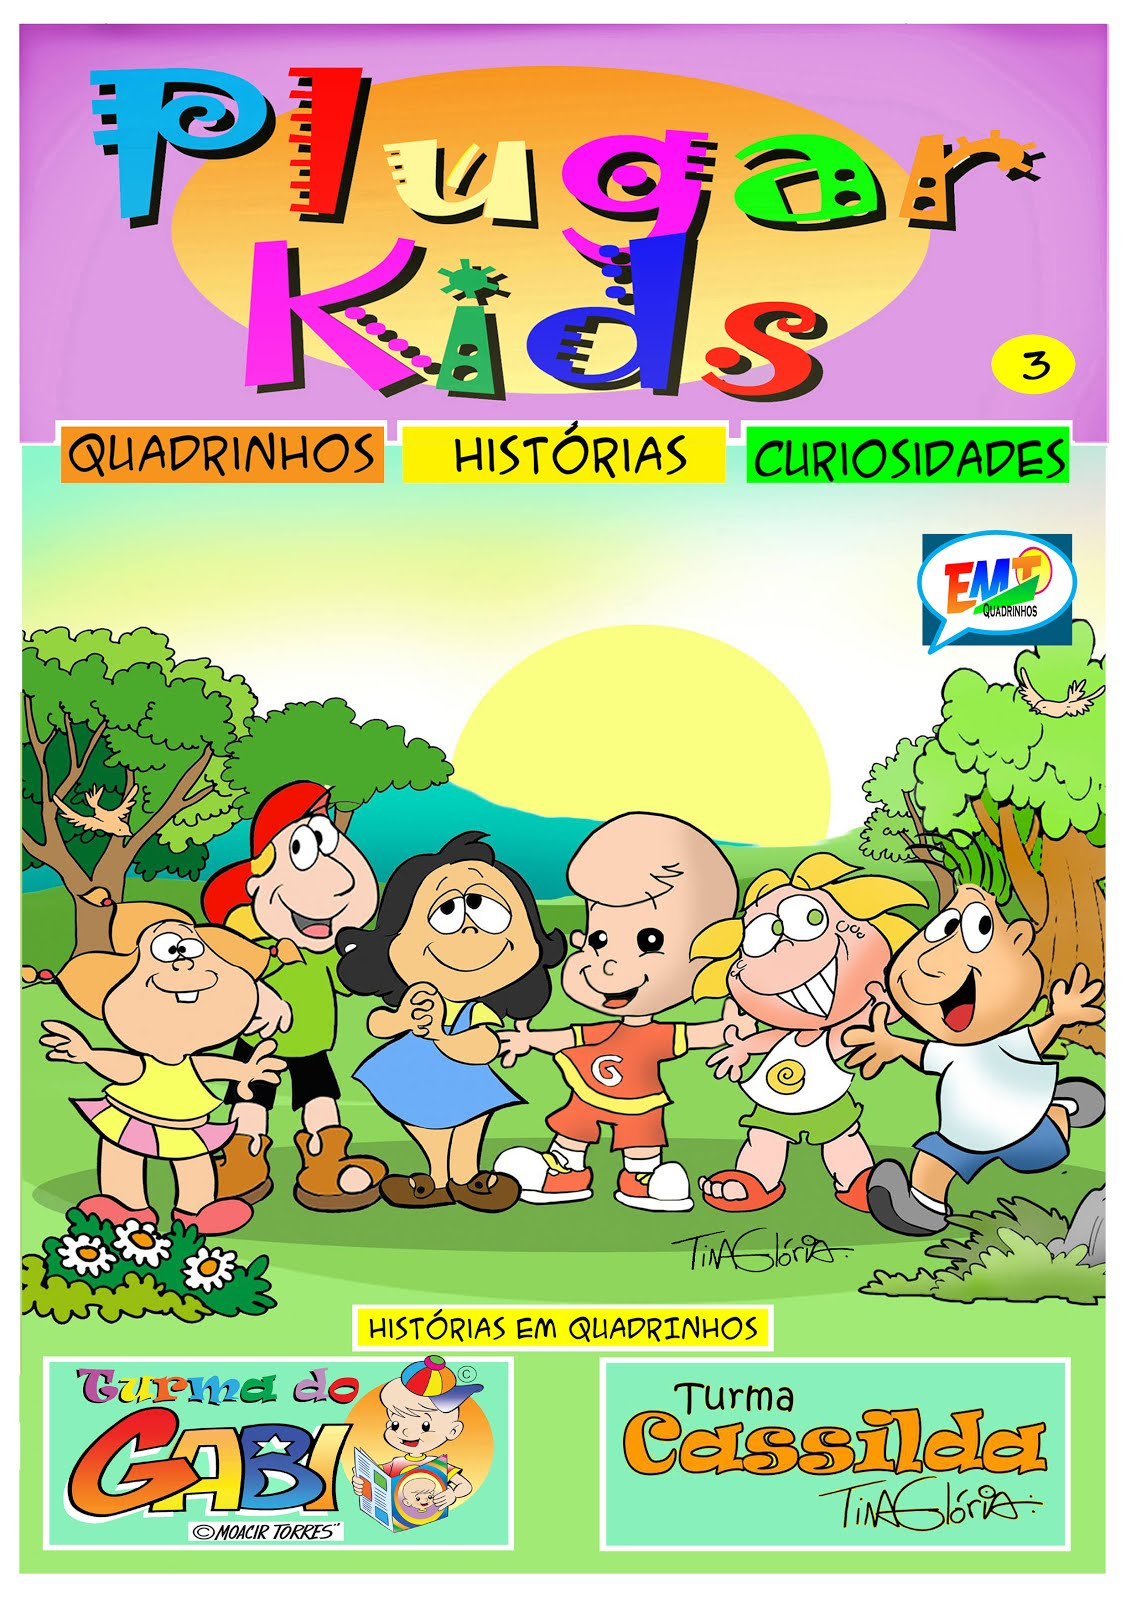 REVISTAS DIGITAIS PLUGAR KIDS